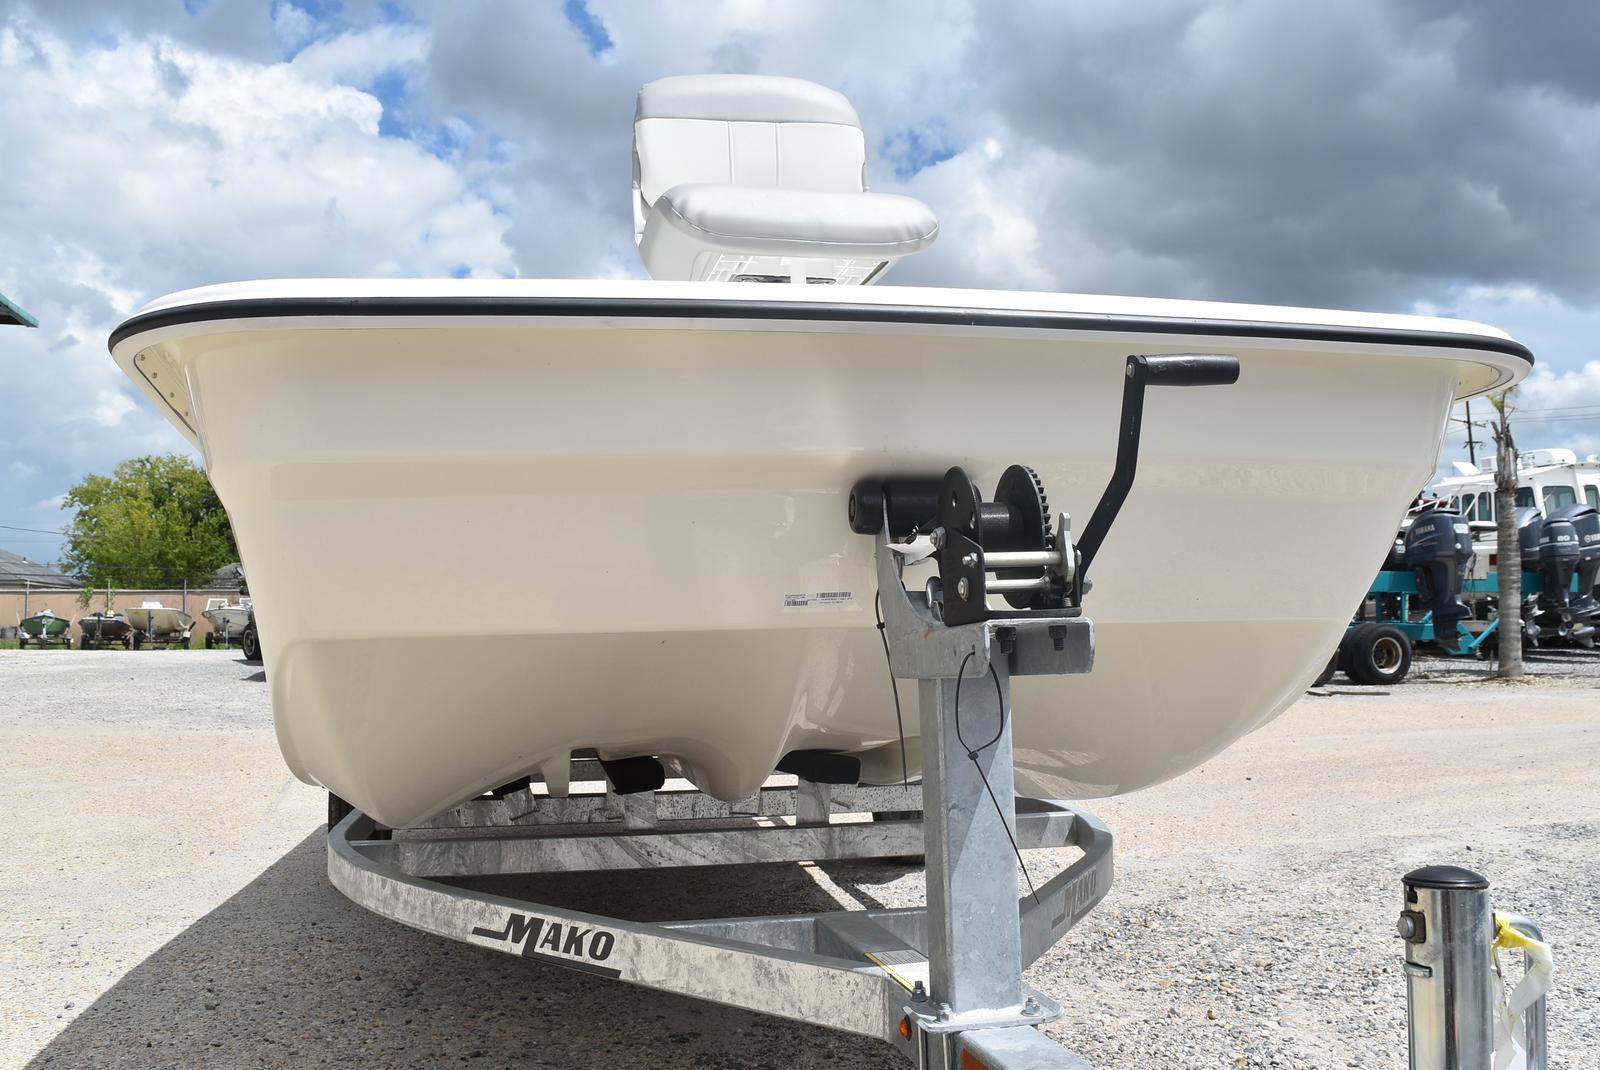 2020 Mako boat for sale, model of the boat is Pro Skiff 17, 75 ELPT & Image # 355 of 702